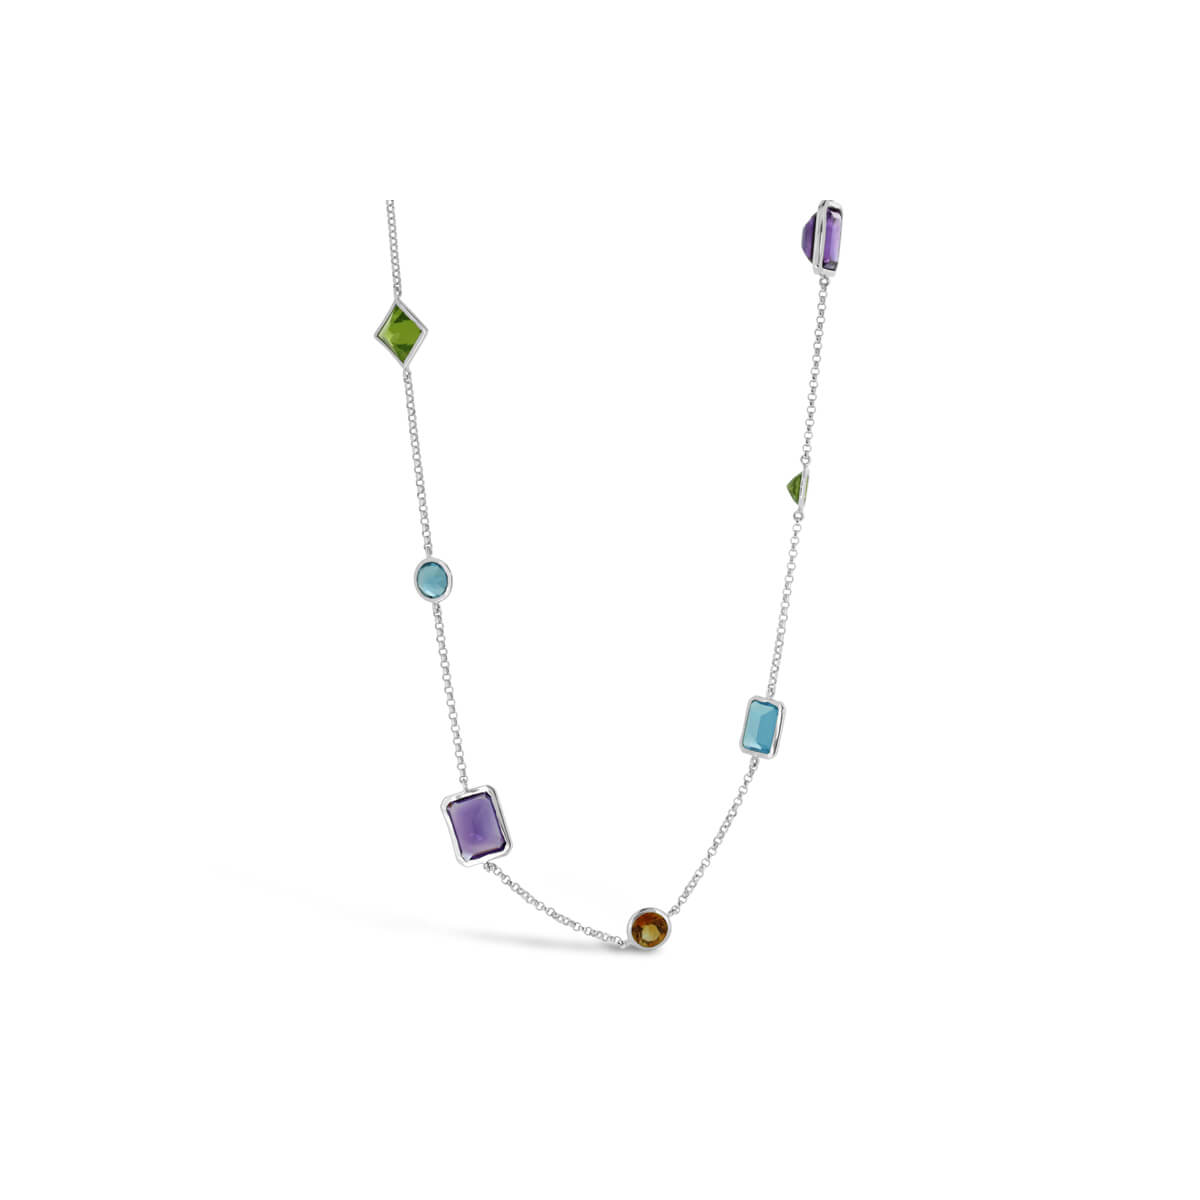 18ct white gold semi precious coloured stone belcher link necklace